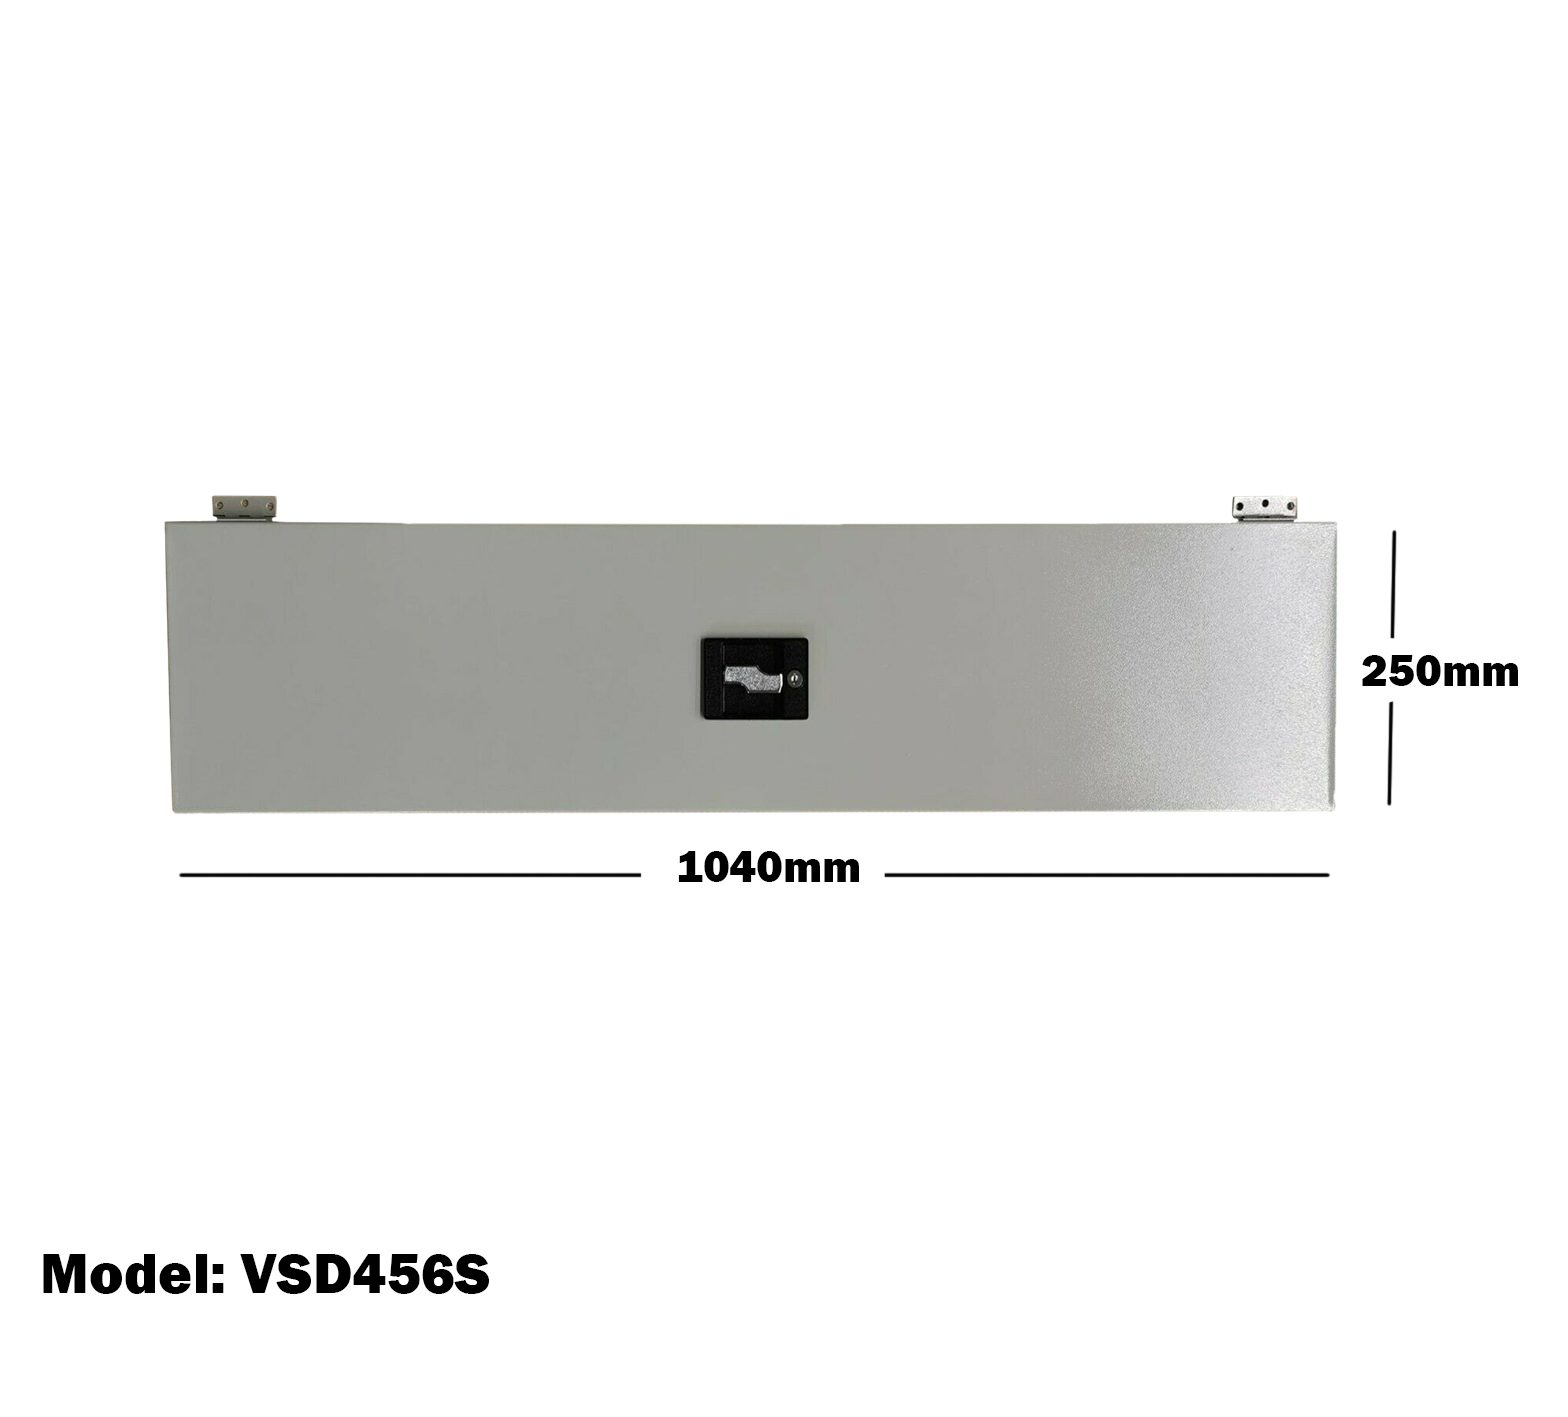 Van Shelving 1040mm(L) x 250mm(H) Lockable Door Single Tier For Van Shelving System VSD456S